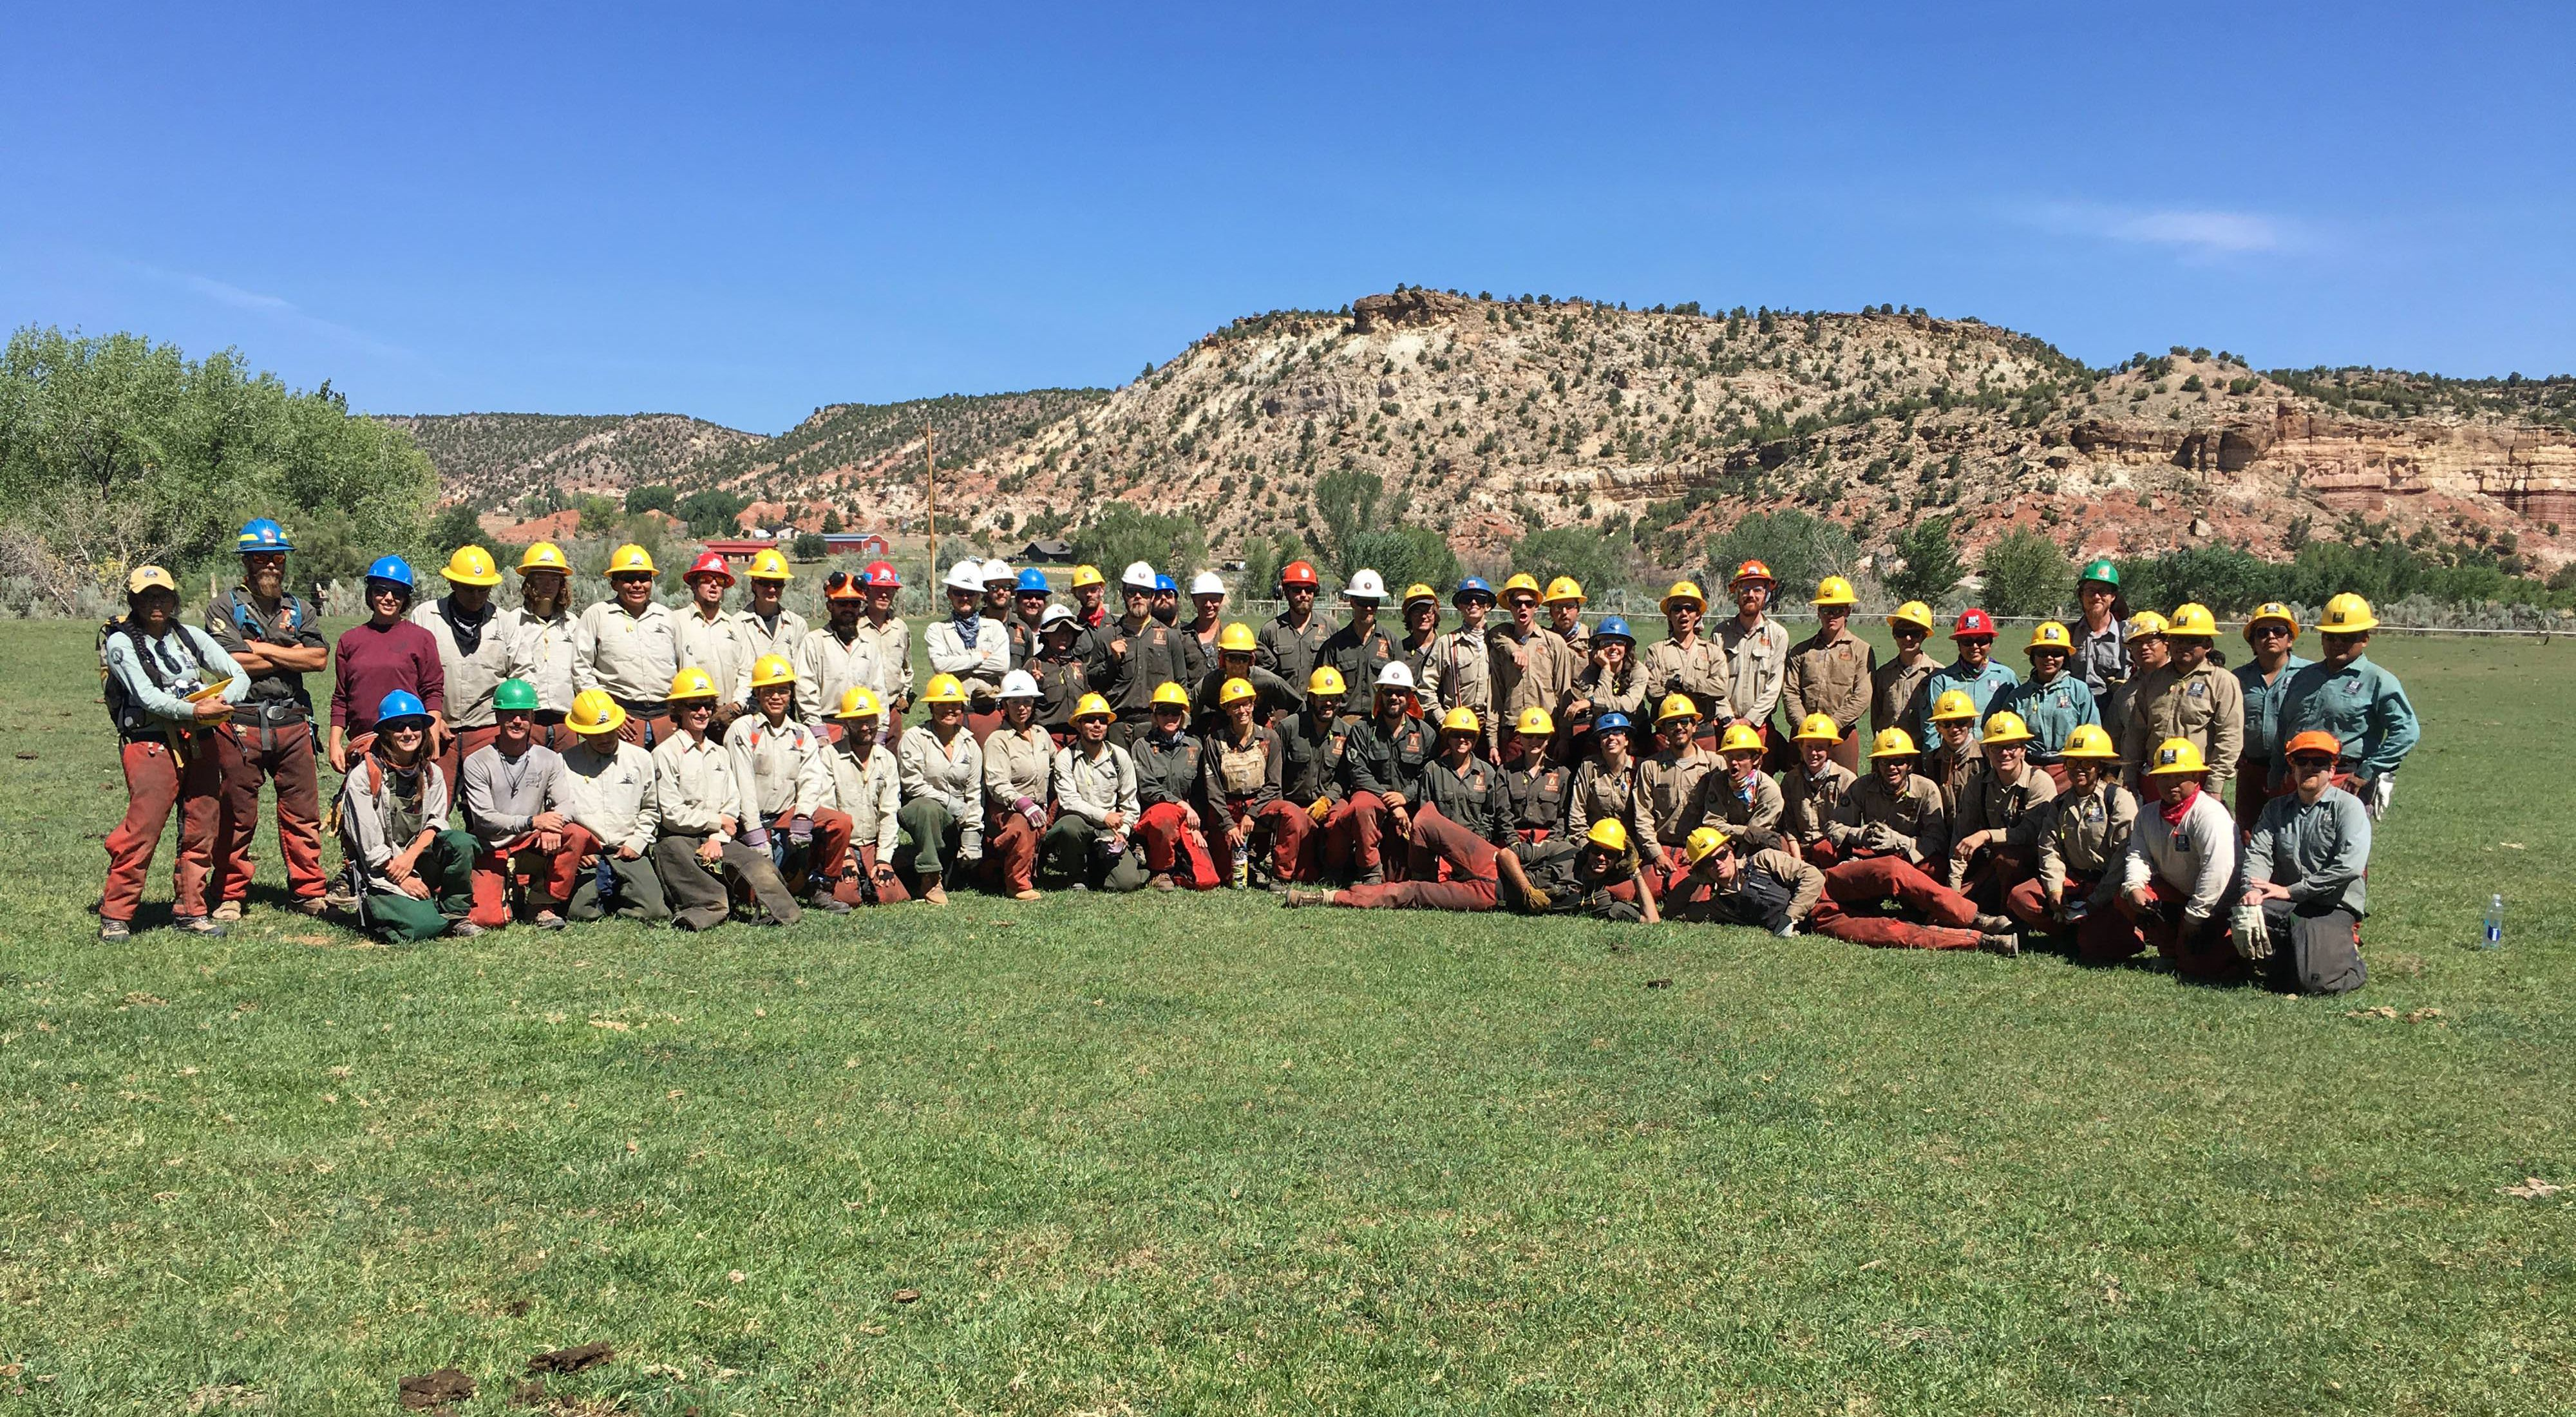 A group of more than 50 restoration crew members pose in rows, standing and sitting in the grass with red rock outcrops in the background.